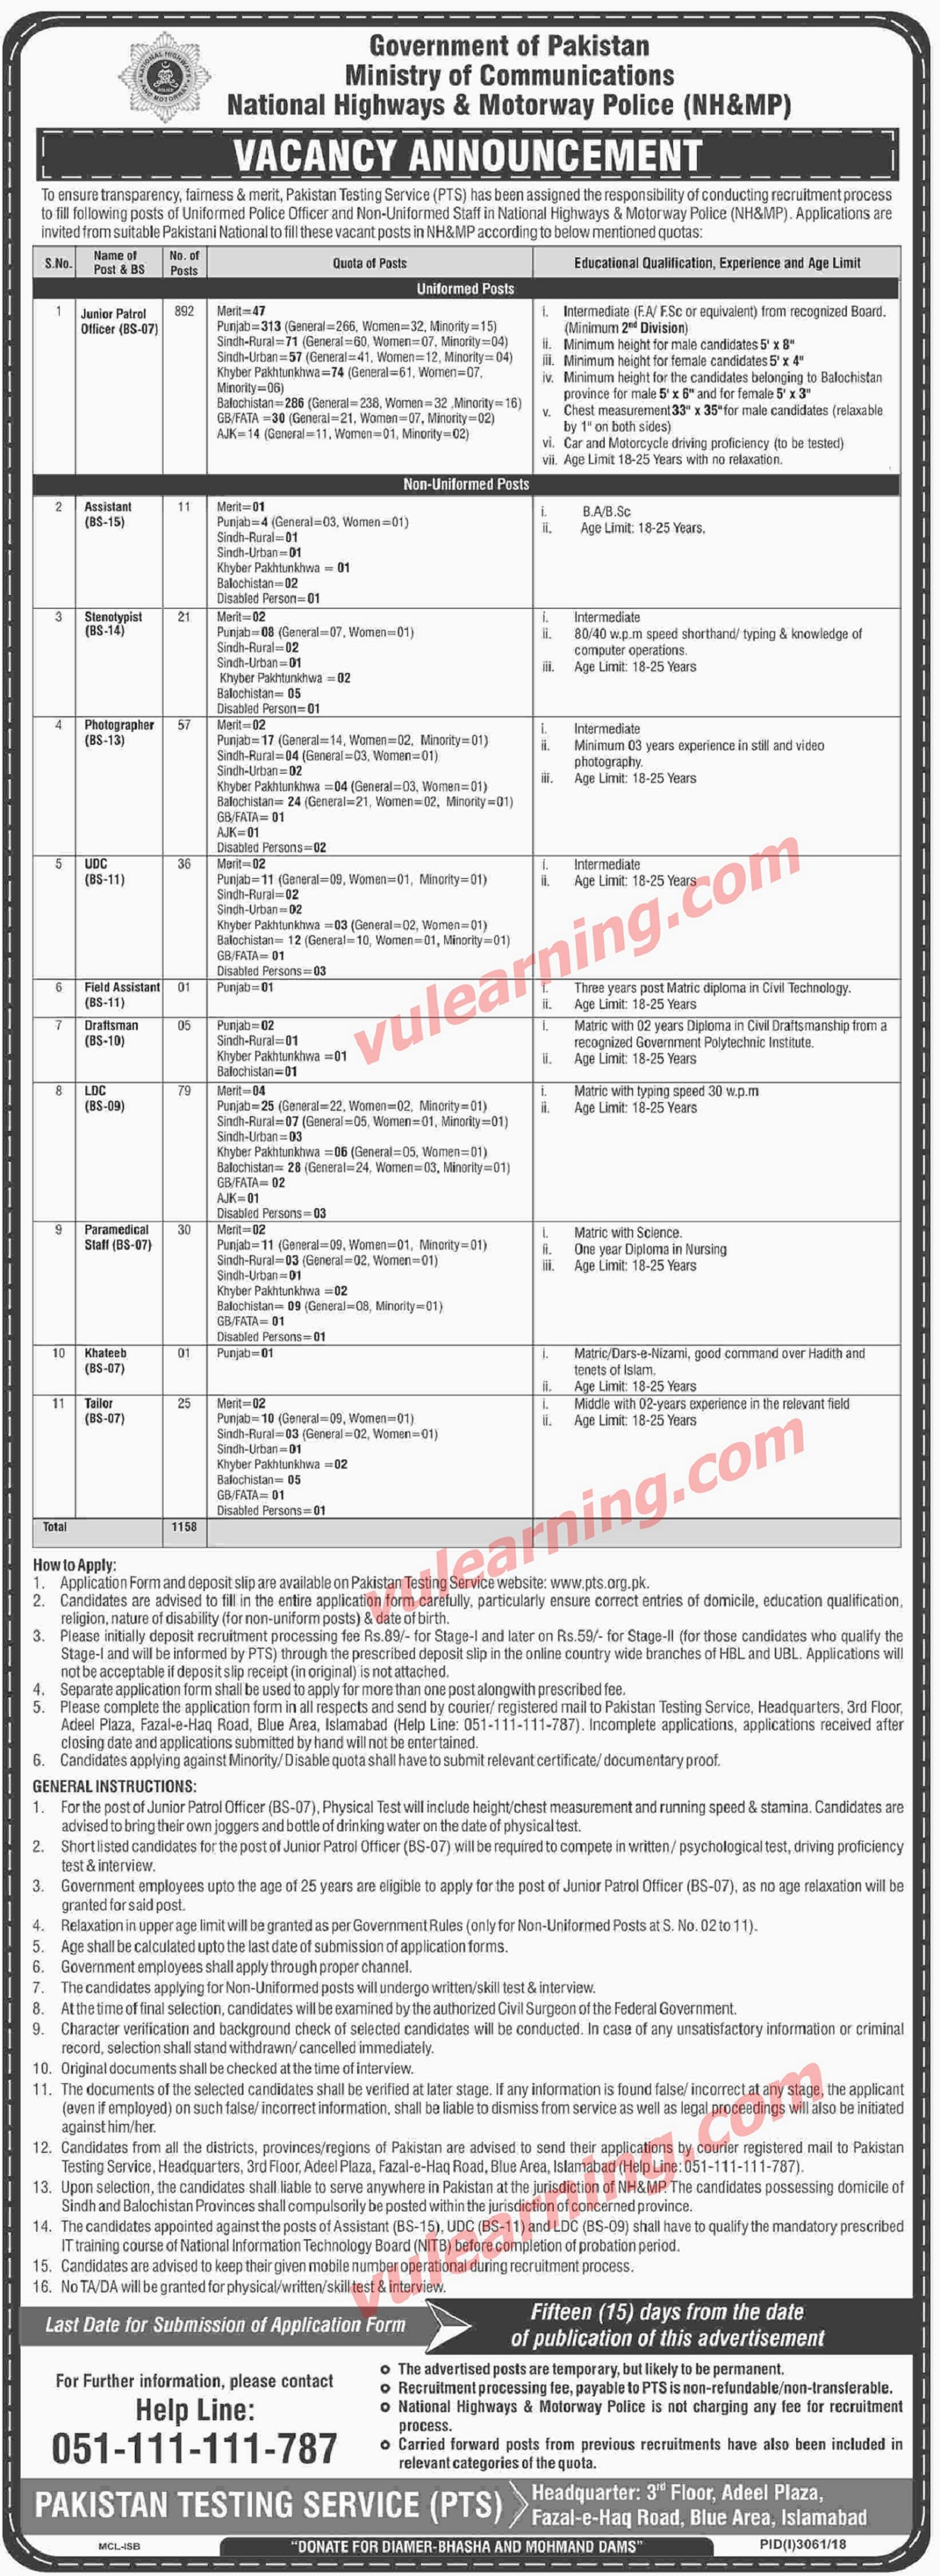 72861 Ogdcl Application Form For Job on free generic, blank generic, part time,